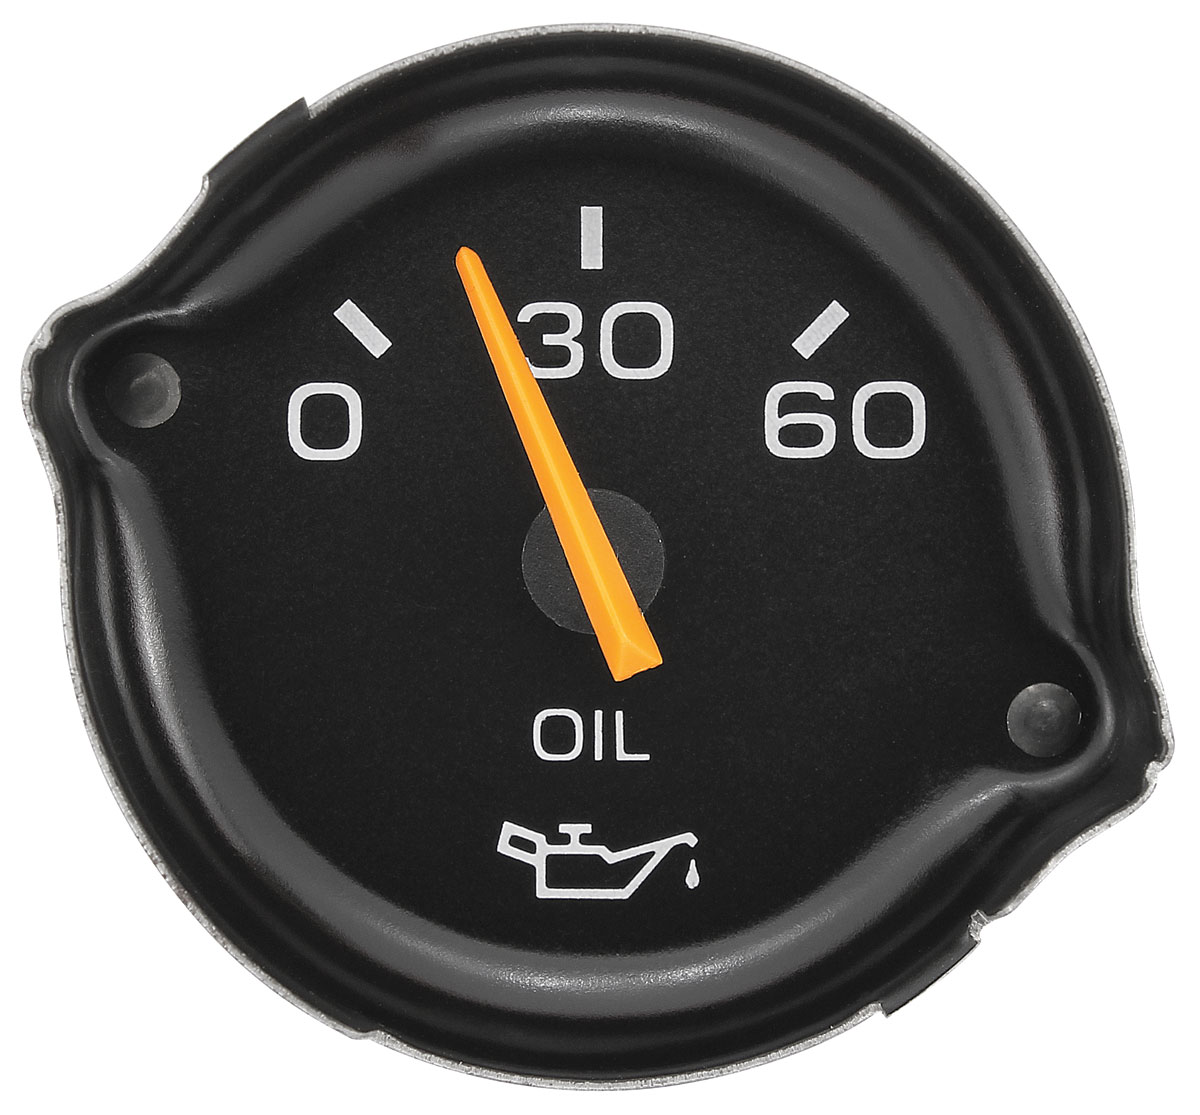 Photo of Gauge (Reproduction) oil pressure (OE# 25025579)